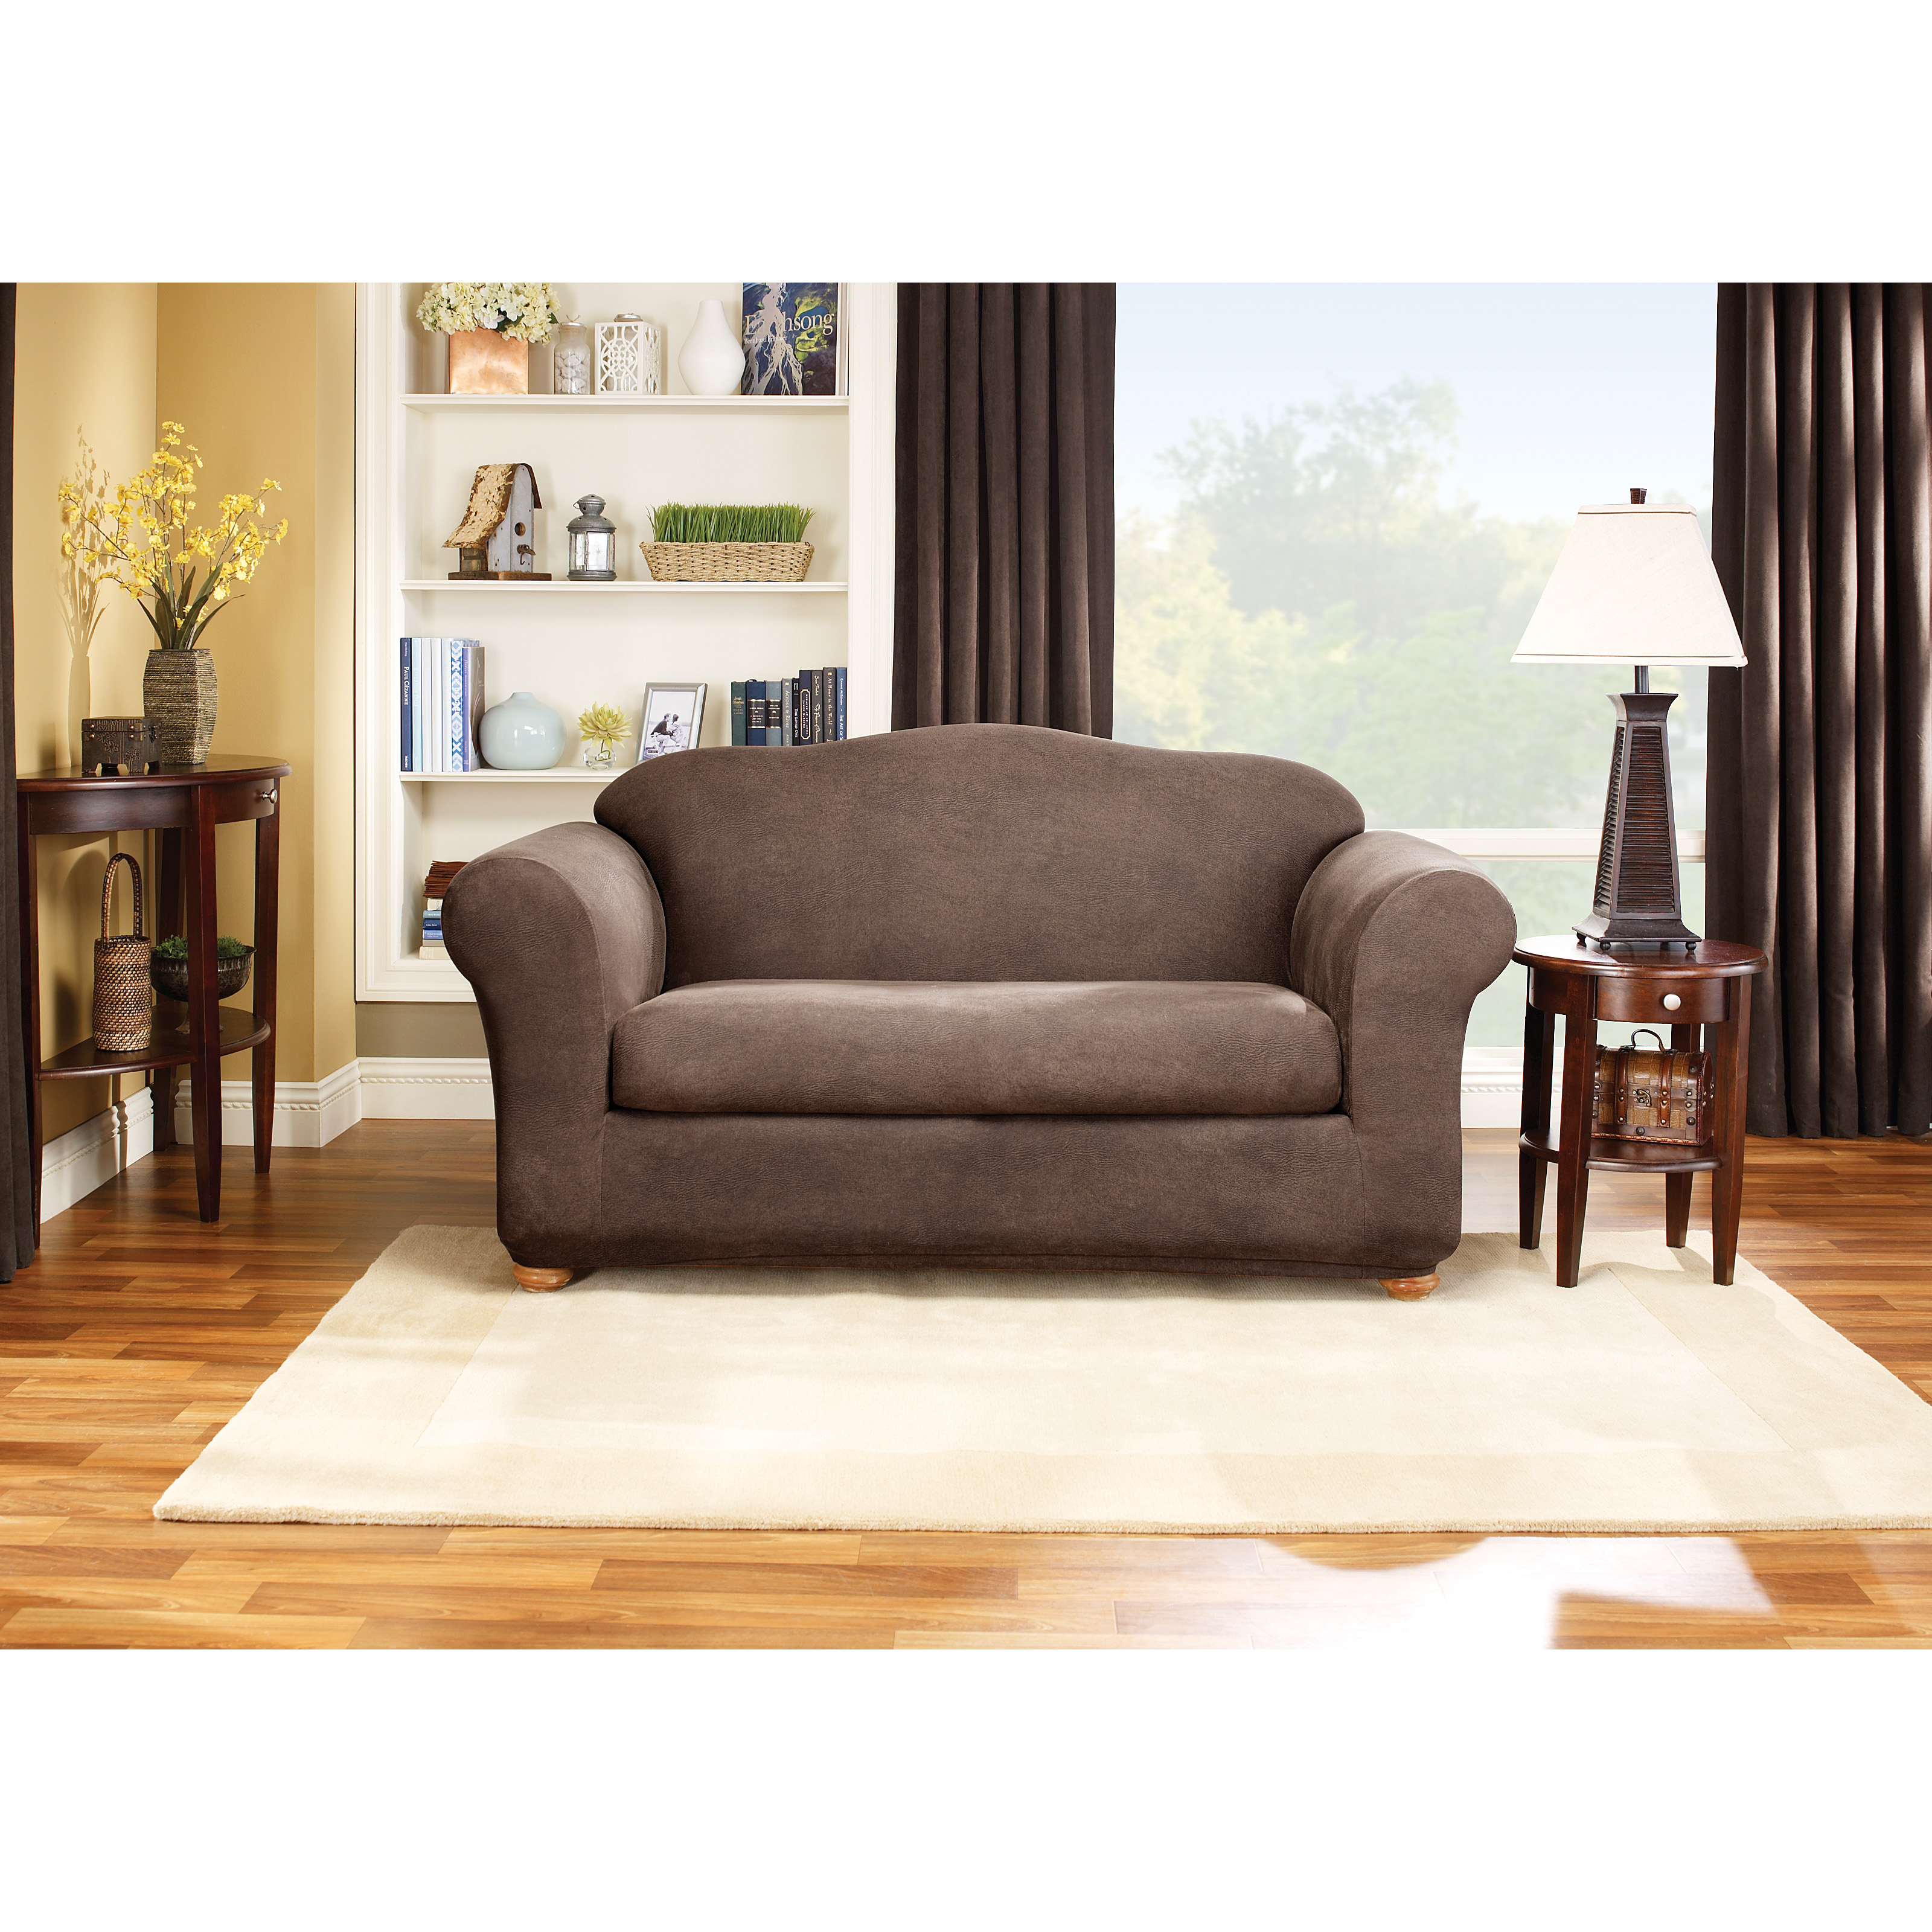 New 2 Piece T Cushion Sofa Slipcover Luxury